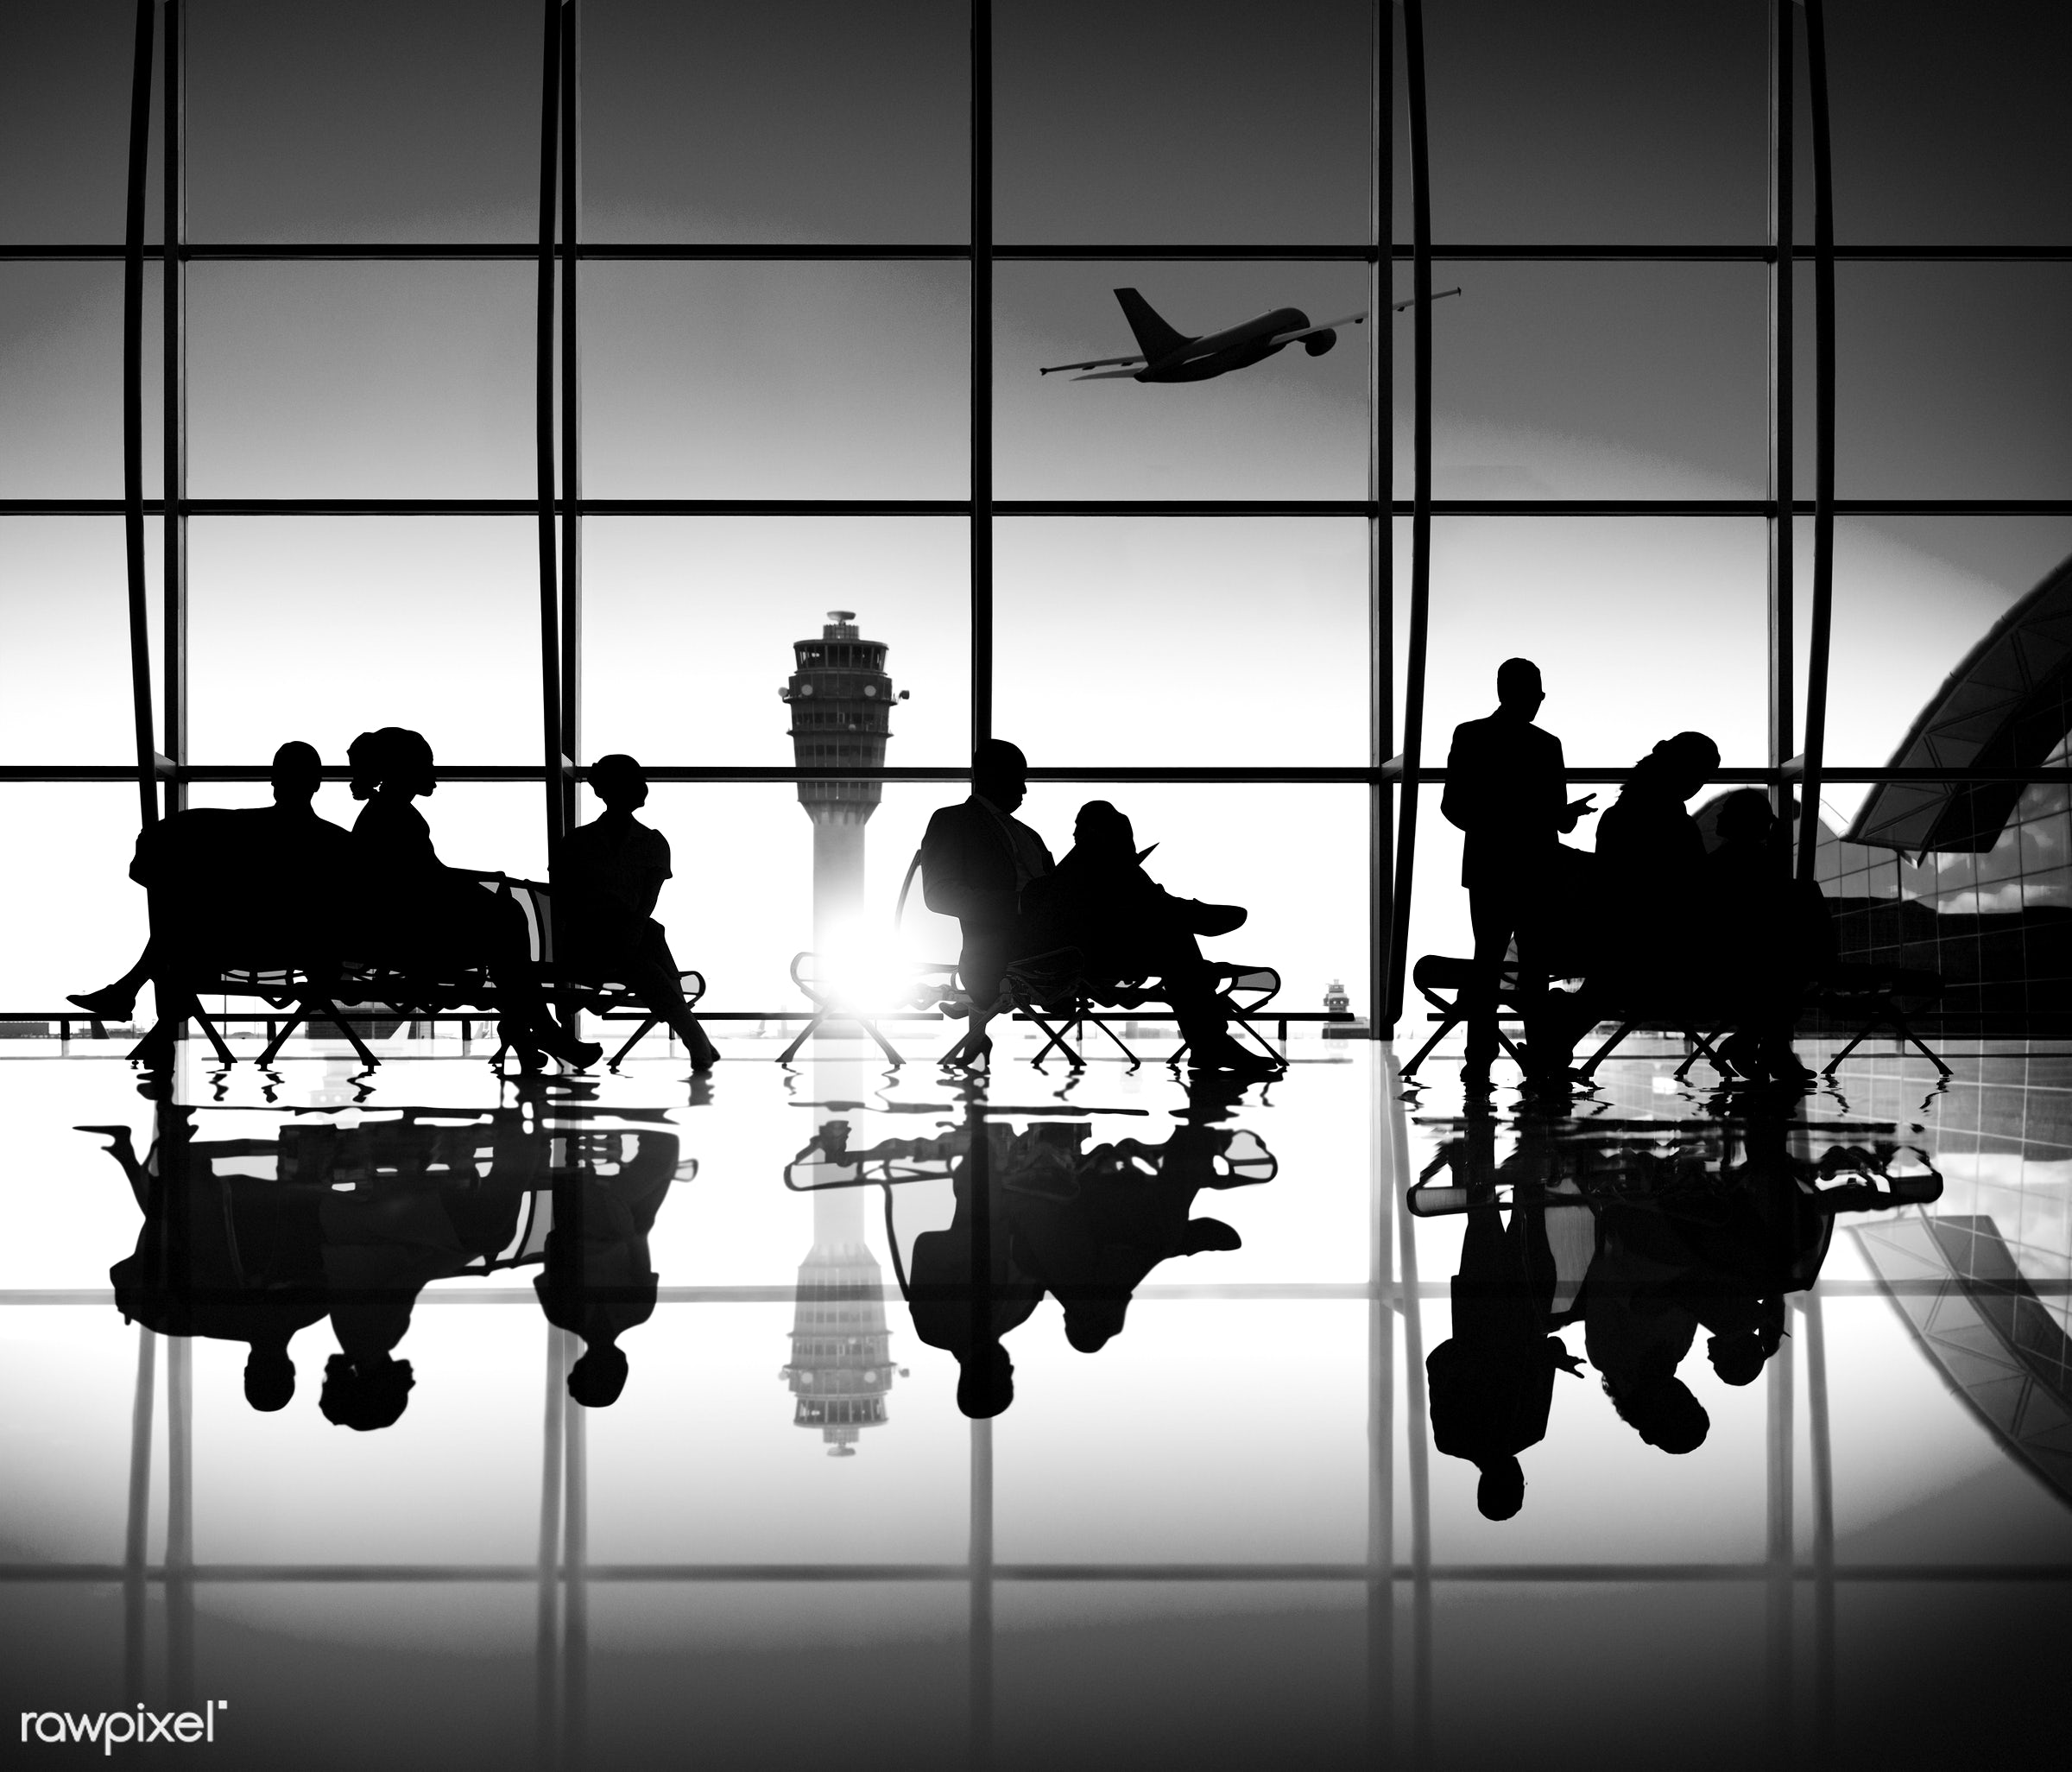 caucasian, air, air vehicle, airplane, airport, arrival, back lit, business, business men, business people, business travel...